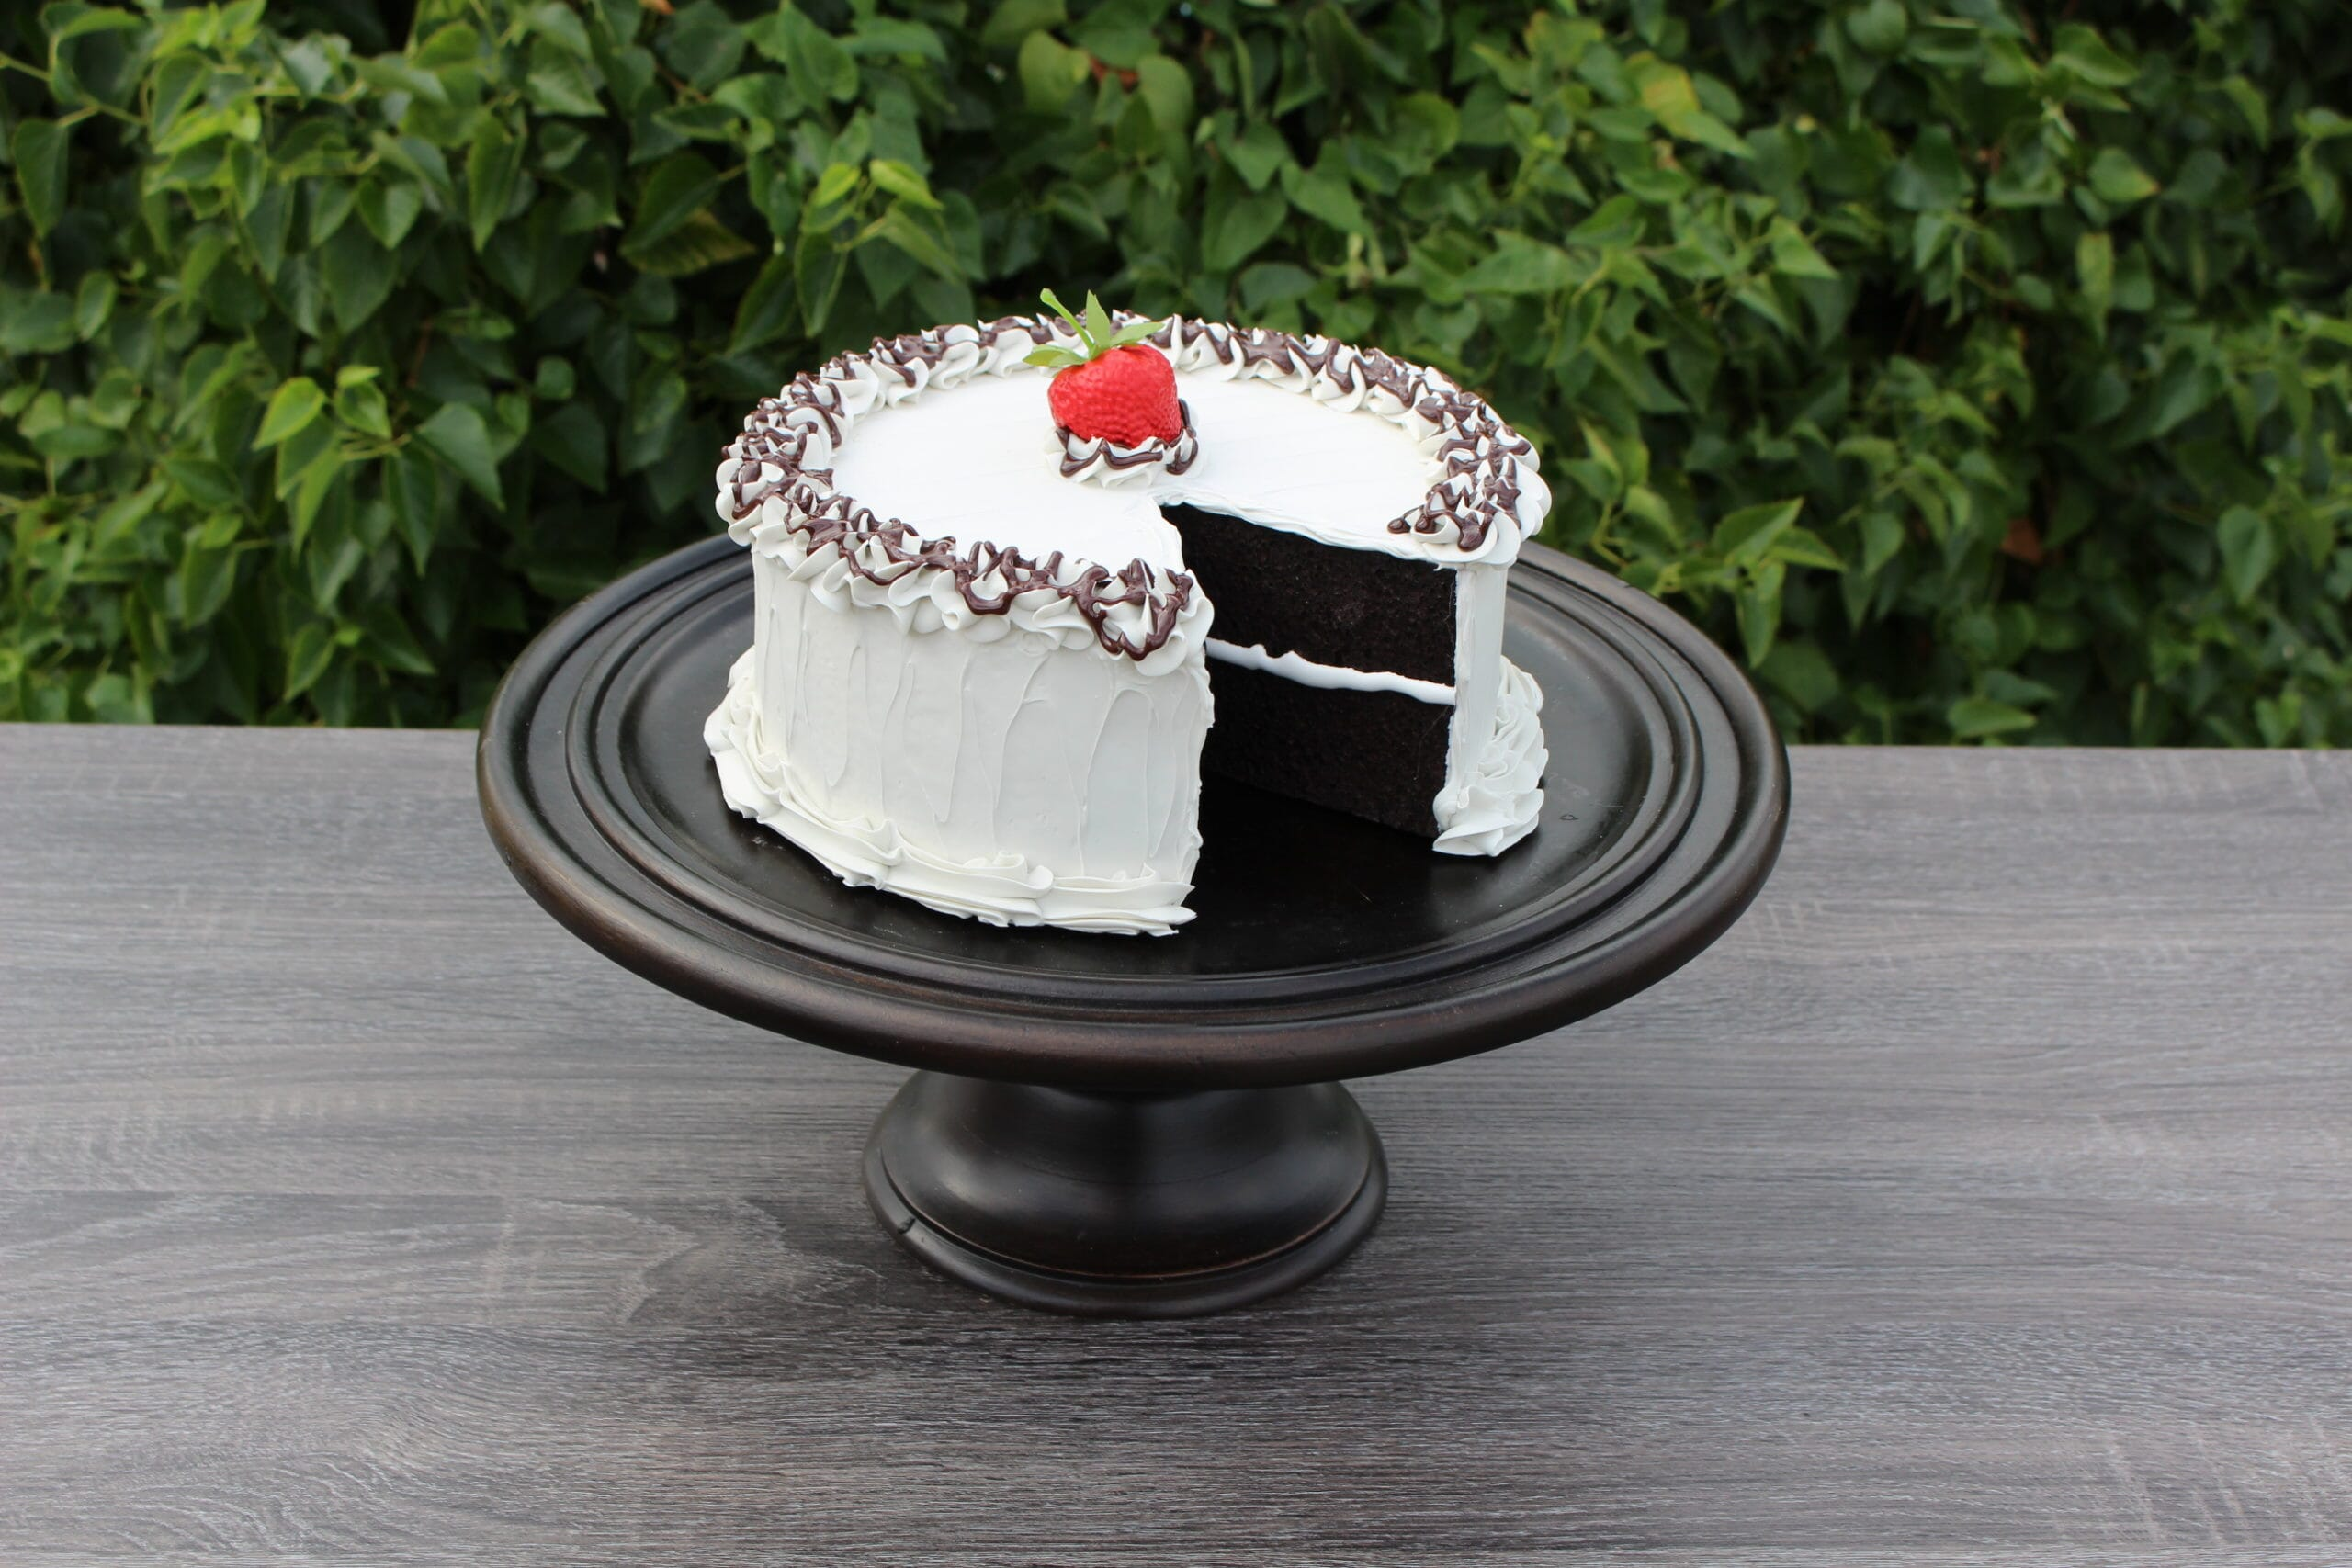 Fake Large Vanilla Frosted Cake with Slice Removed